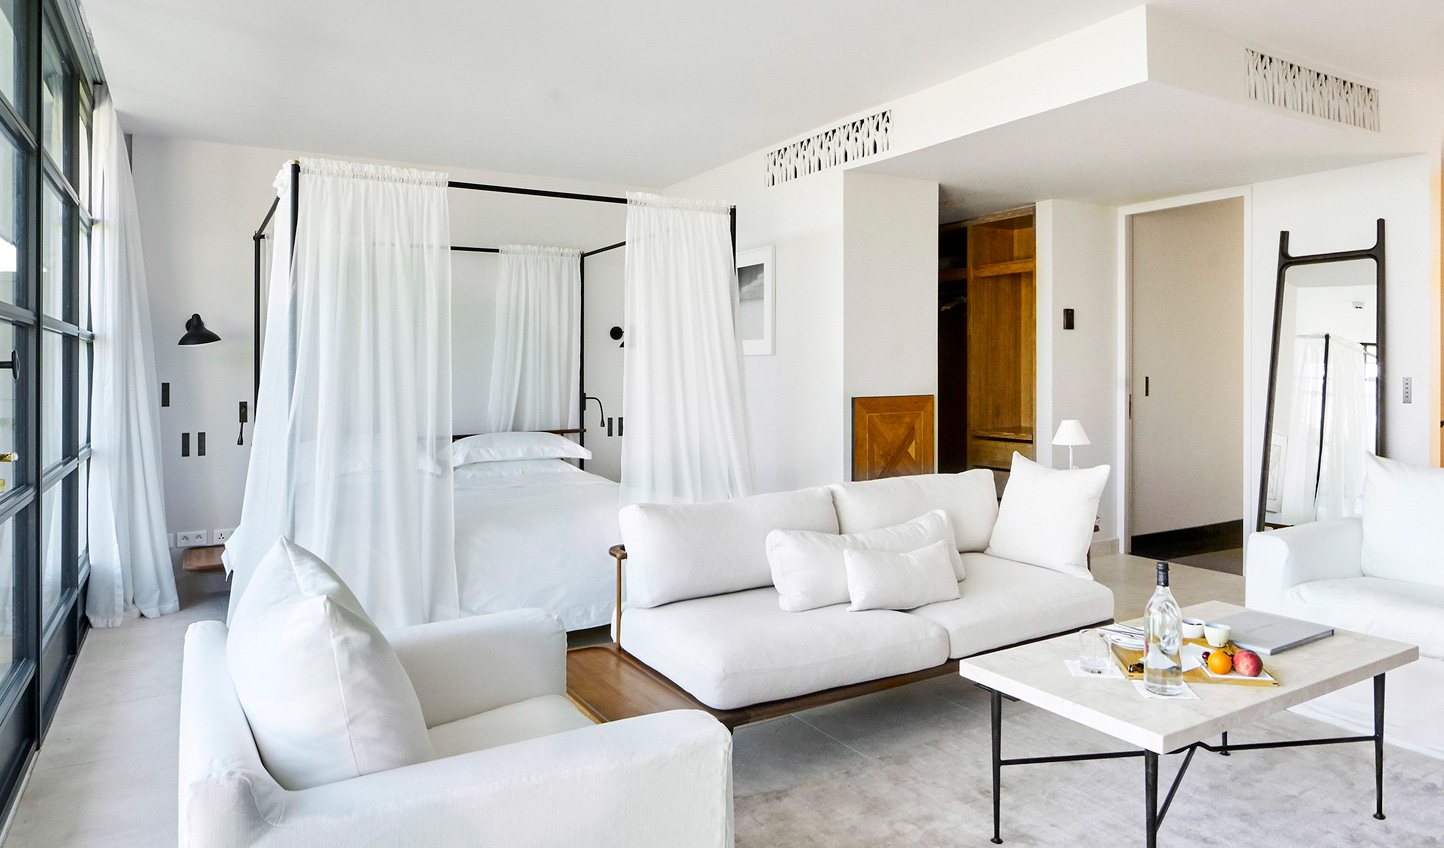 Neutral and contemporary, the Villa Suites at Villa La Coste are zen-like spaces in which to relax